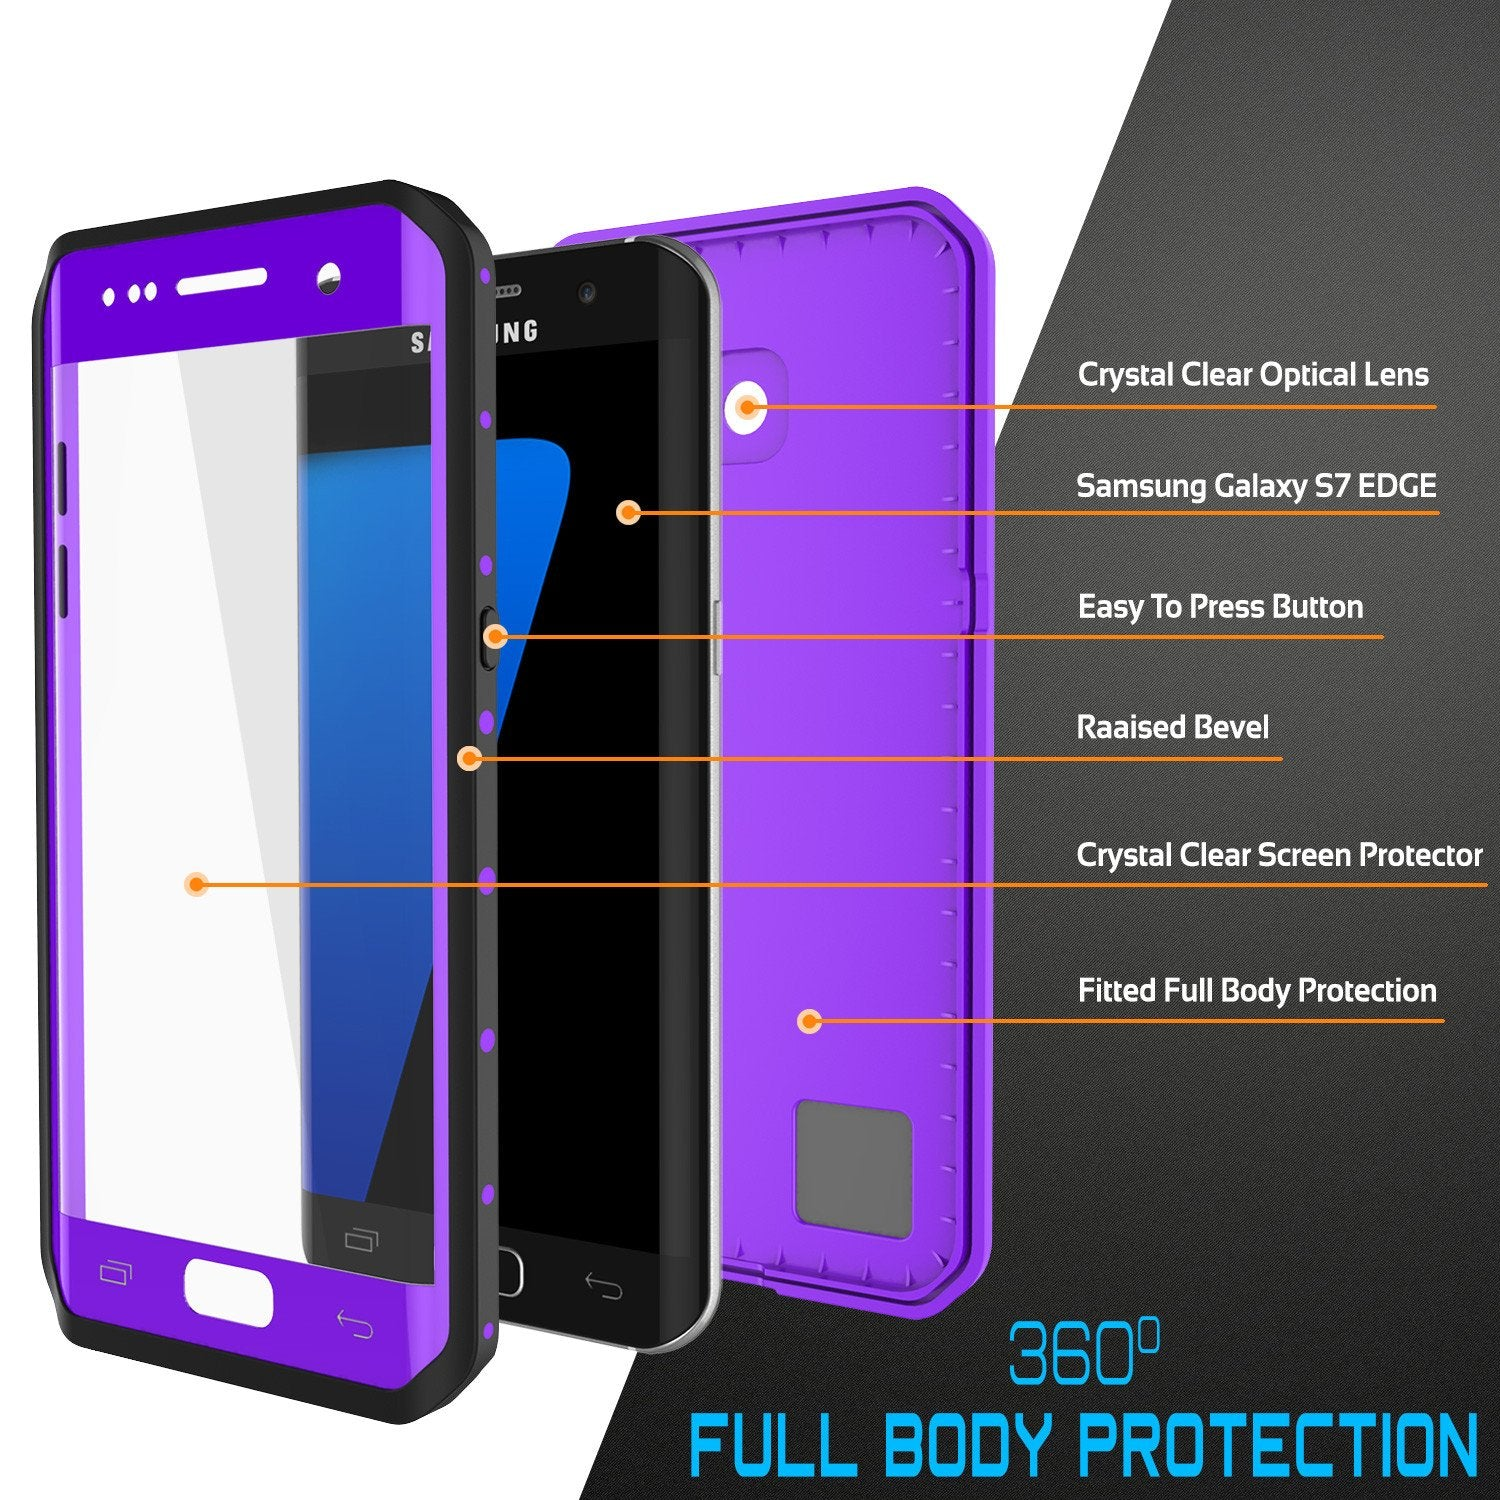 Galaxy S7 EDGE Waterproof Case PunkCase StudStar Purple Thin 6.6ft Underwater IP68 Shock/Snow Proof - PunkCase NZ